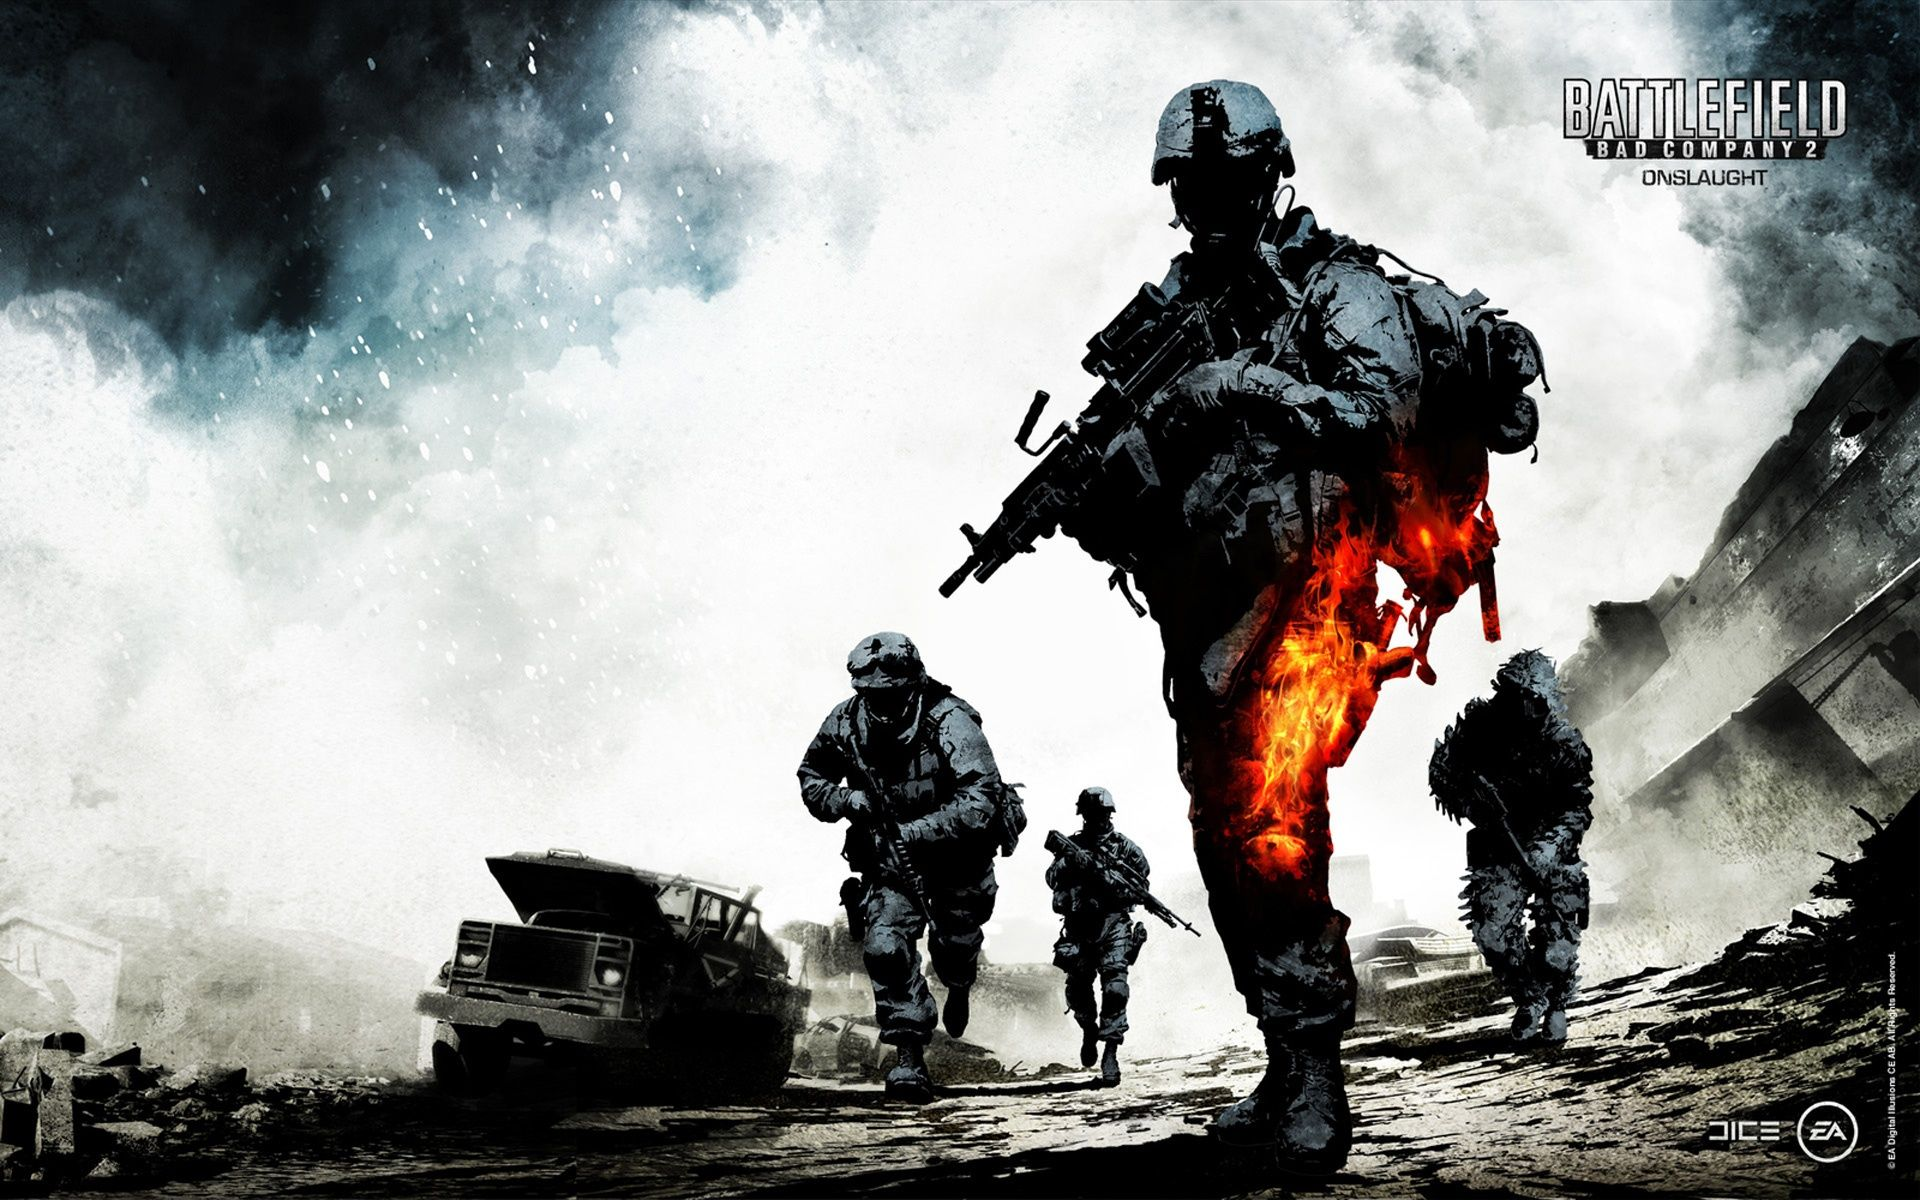 Pin By Jn H On Game Poster Battlefield Bad Company Battlefield Bad Company 2 Battlefield